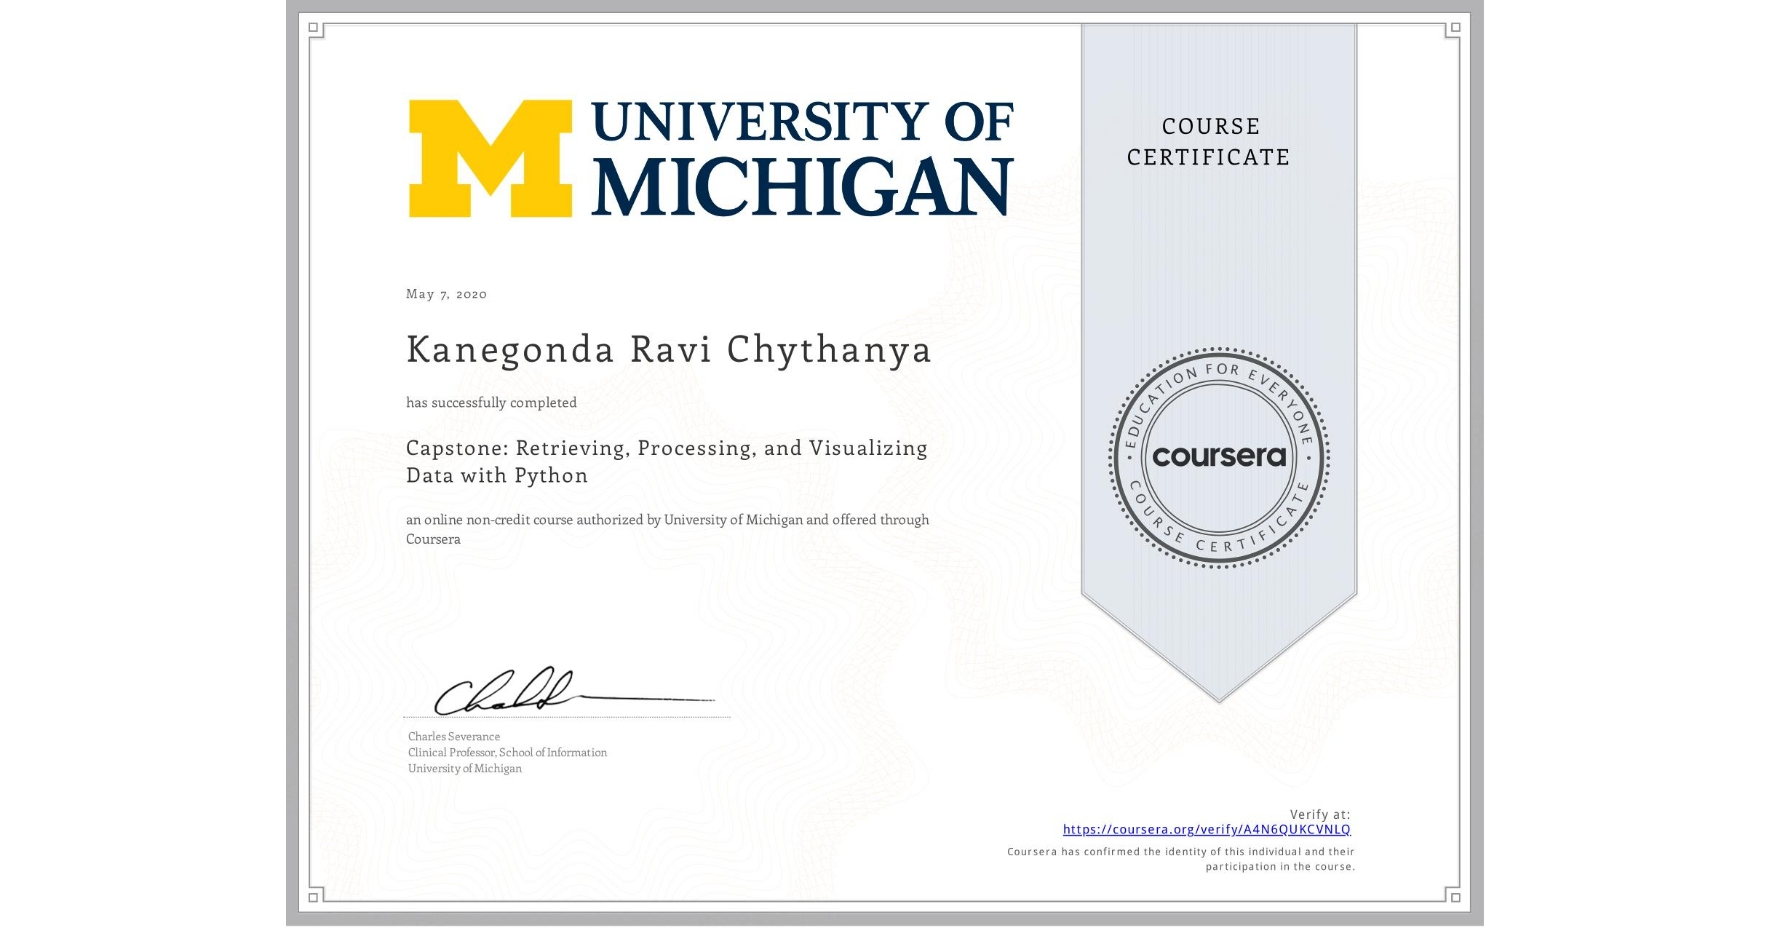 View certificate for Kanegonda Ravi Chythanya, Capstone: Retrieving, Processing, and Visualizing Data with Python, an online non-credit course authorized by University of Michigan and offered through Coursera